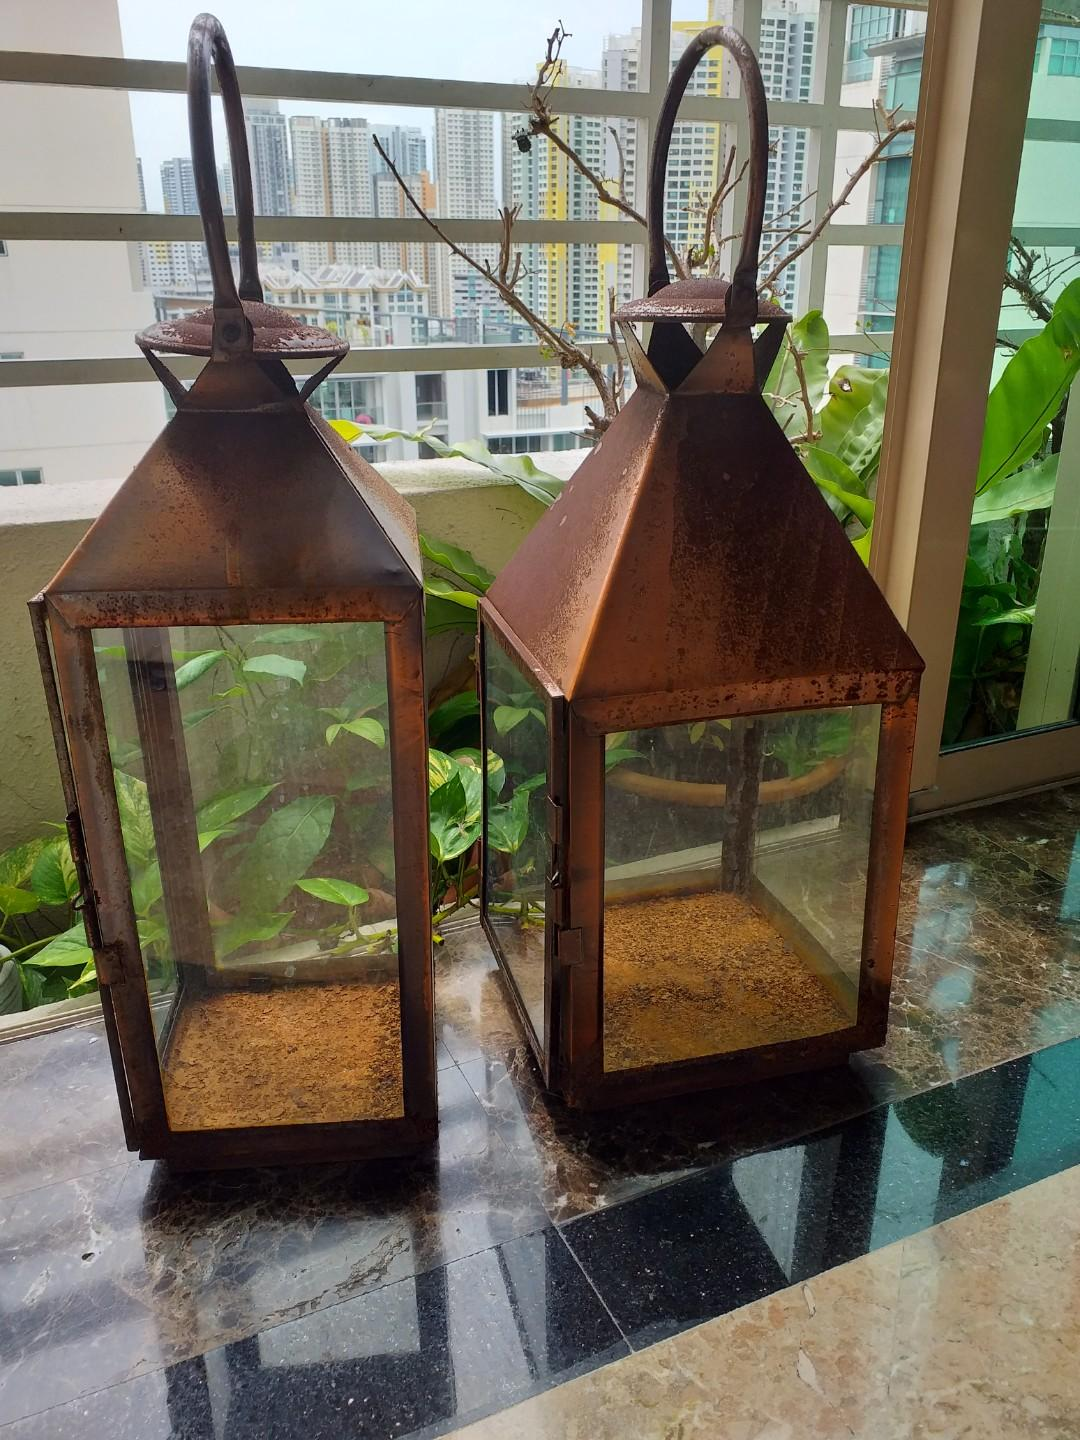 Rustic Lamp Candle Light Lantern Plants Casing for  Garden House Cafe Decor  Use